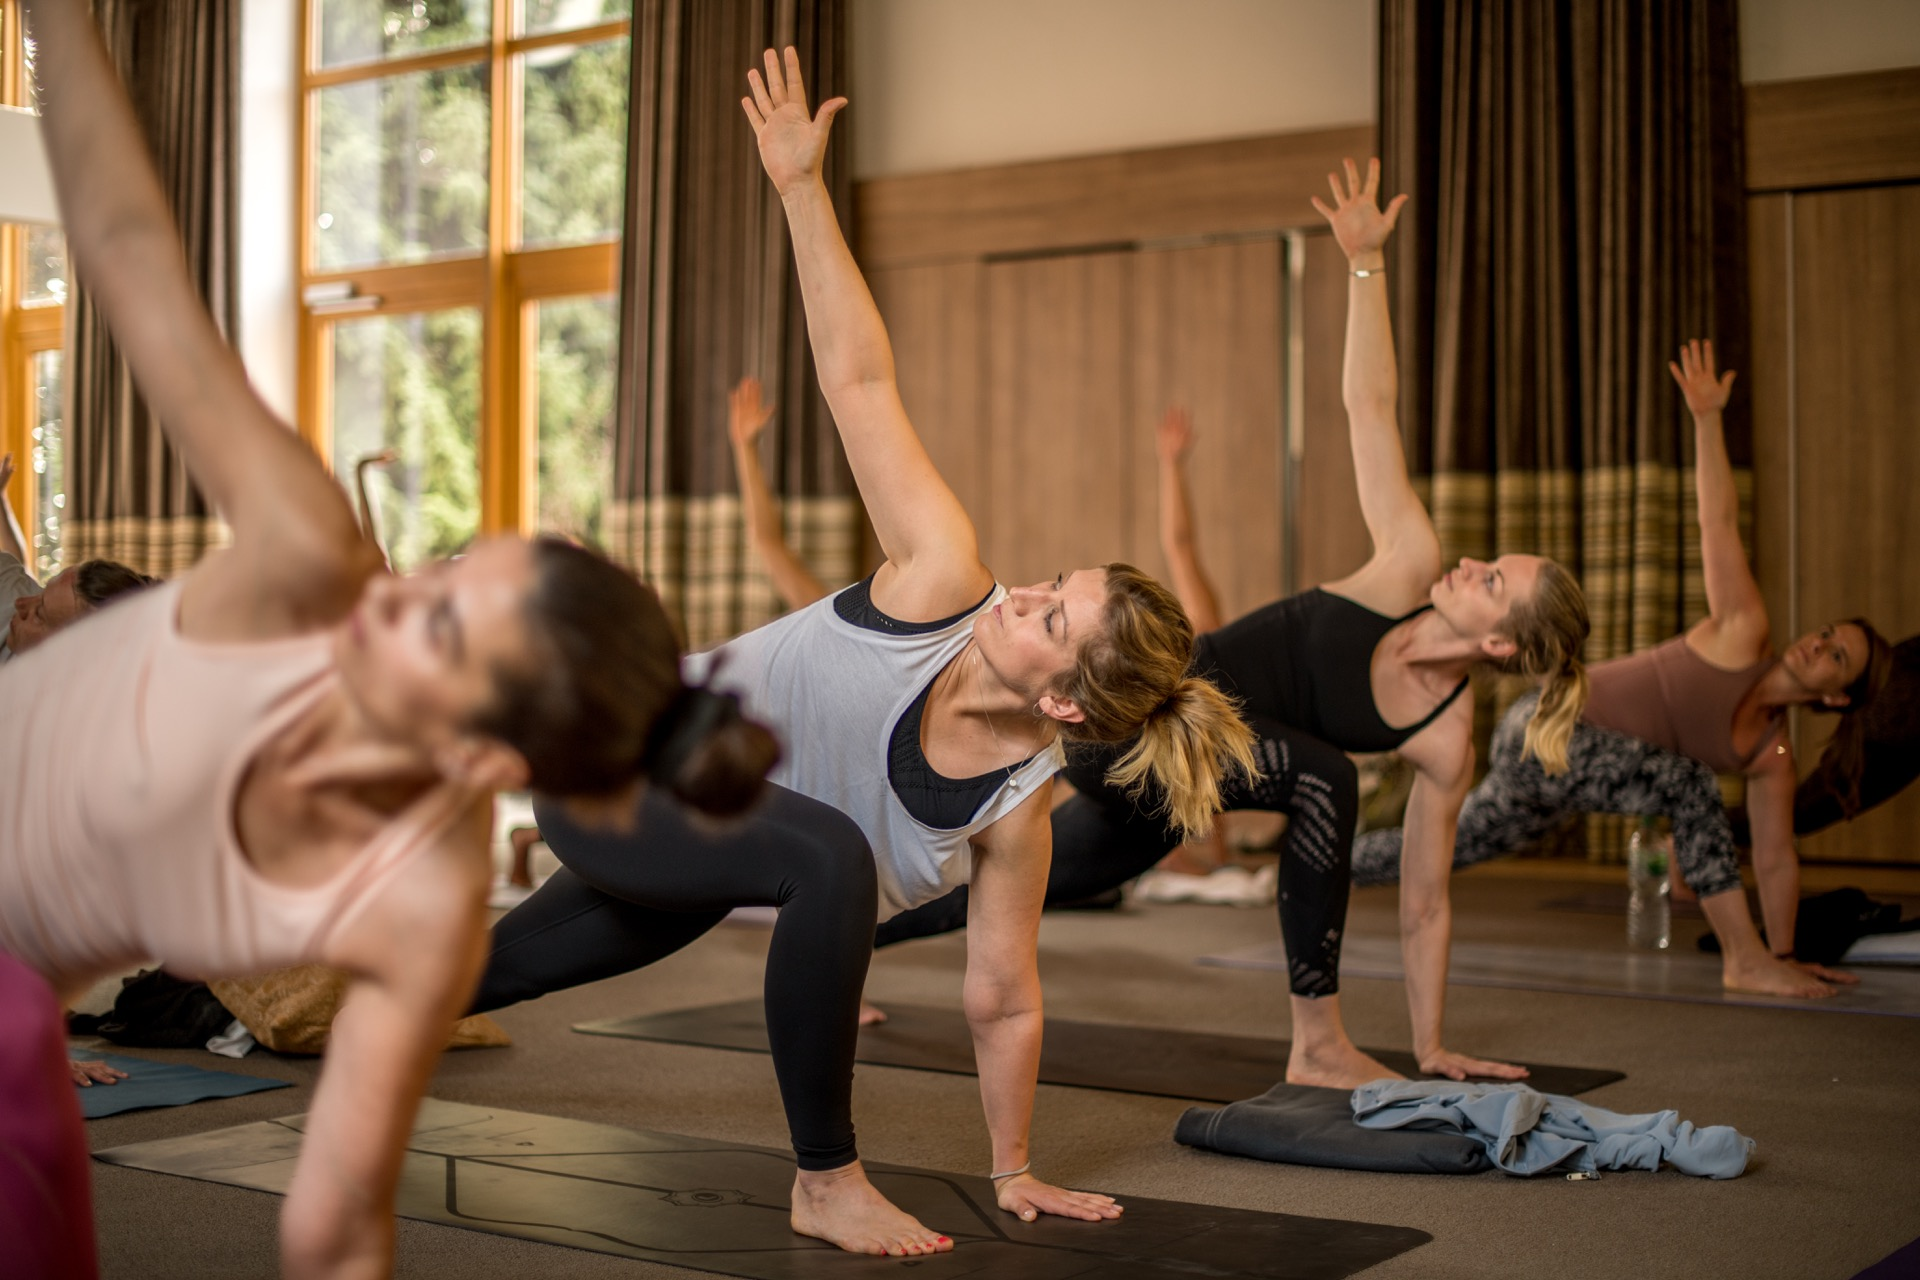 Hie-Kim-Friends-2019-Yoga-Retreat-Alina-Matis-Photography-083 - Hie Kim Yoga - Yoga Retreat - Yoga Workshops und Reisen